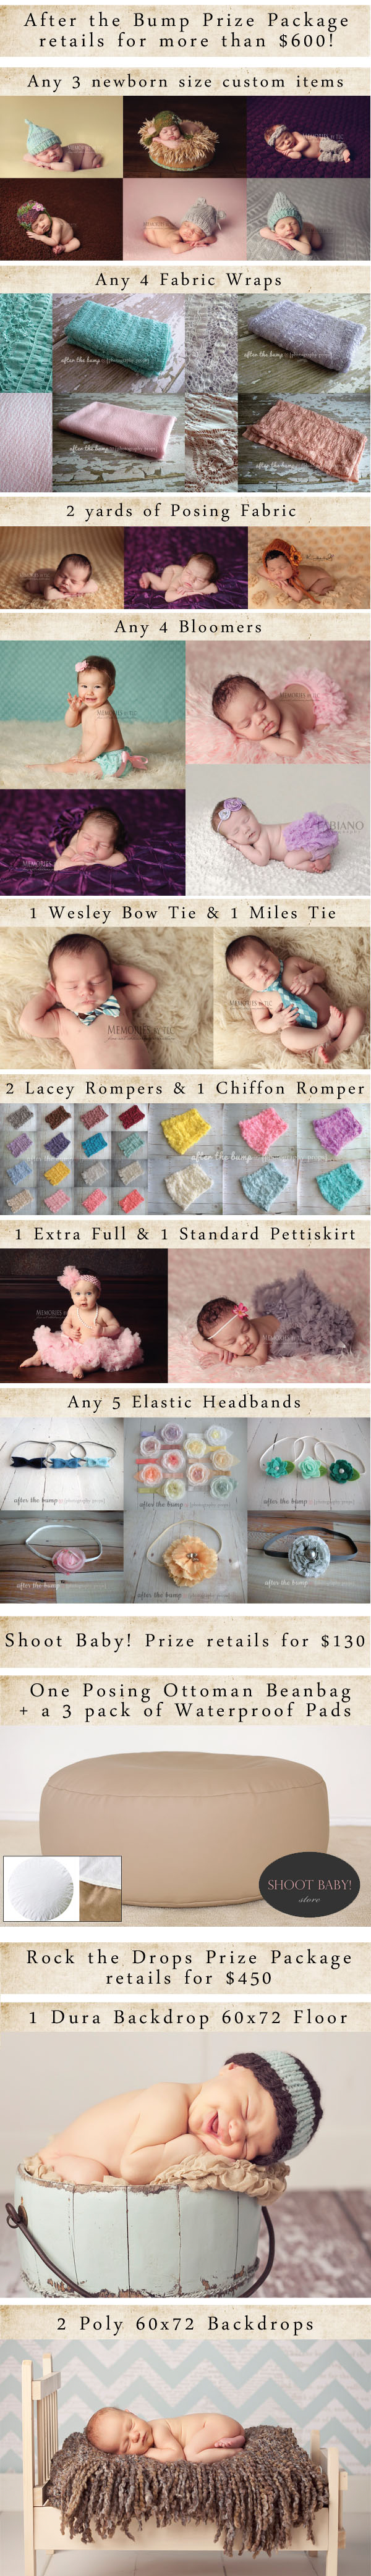 newborn-giveaway Giveaway: The Ultimate Newborn Photographer Prop Prize Pack - $1,200 Value Announcements Contests